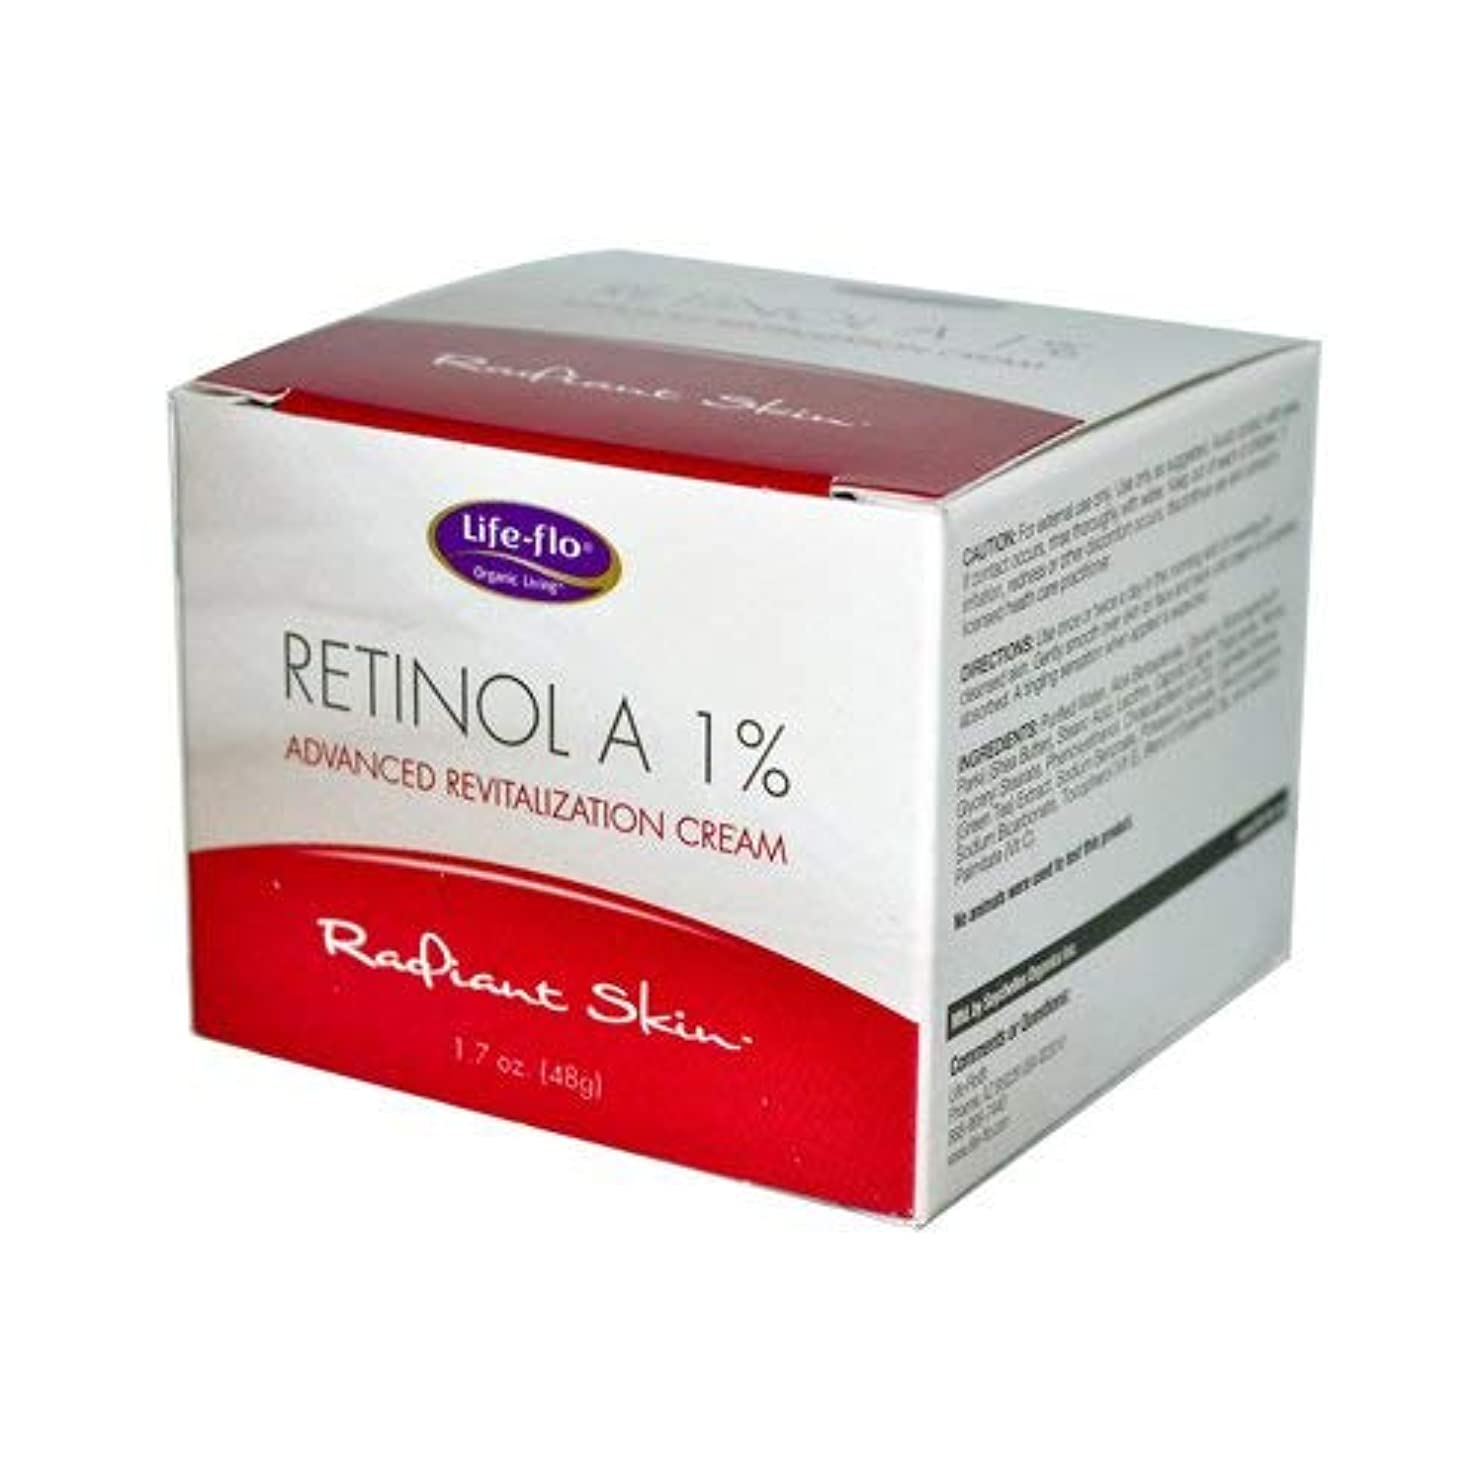 不幸クラックポット愚か海外直送品 Life-Flo Retinol A 1% Advanced Revitalization Cream, 1.7 oz- 3 Packs